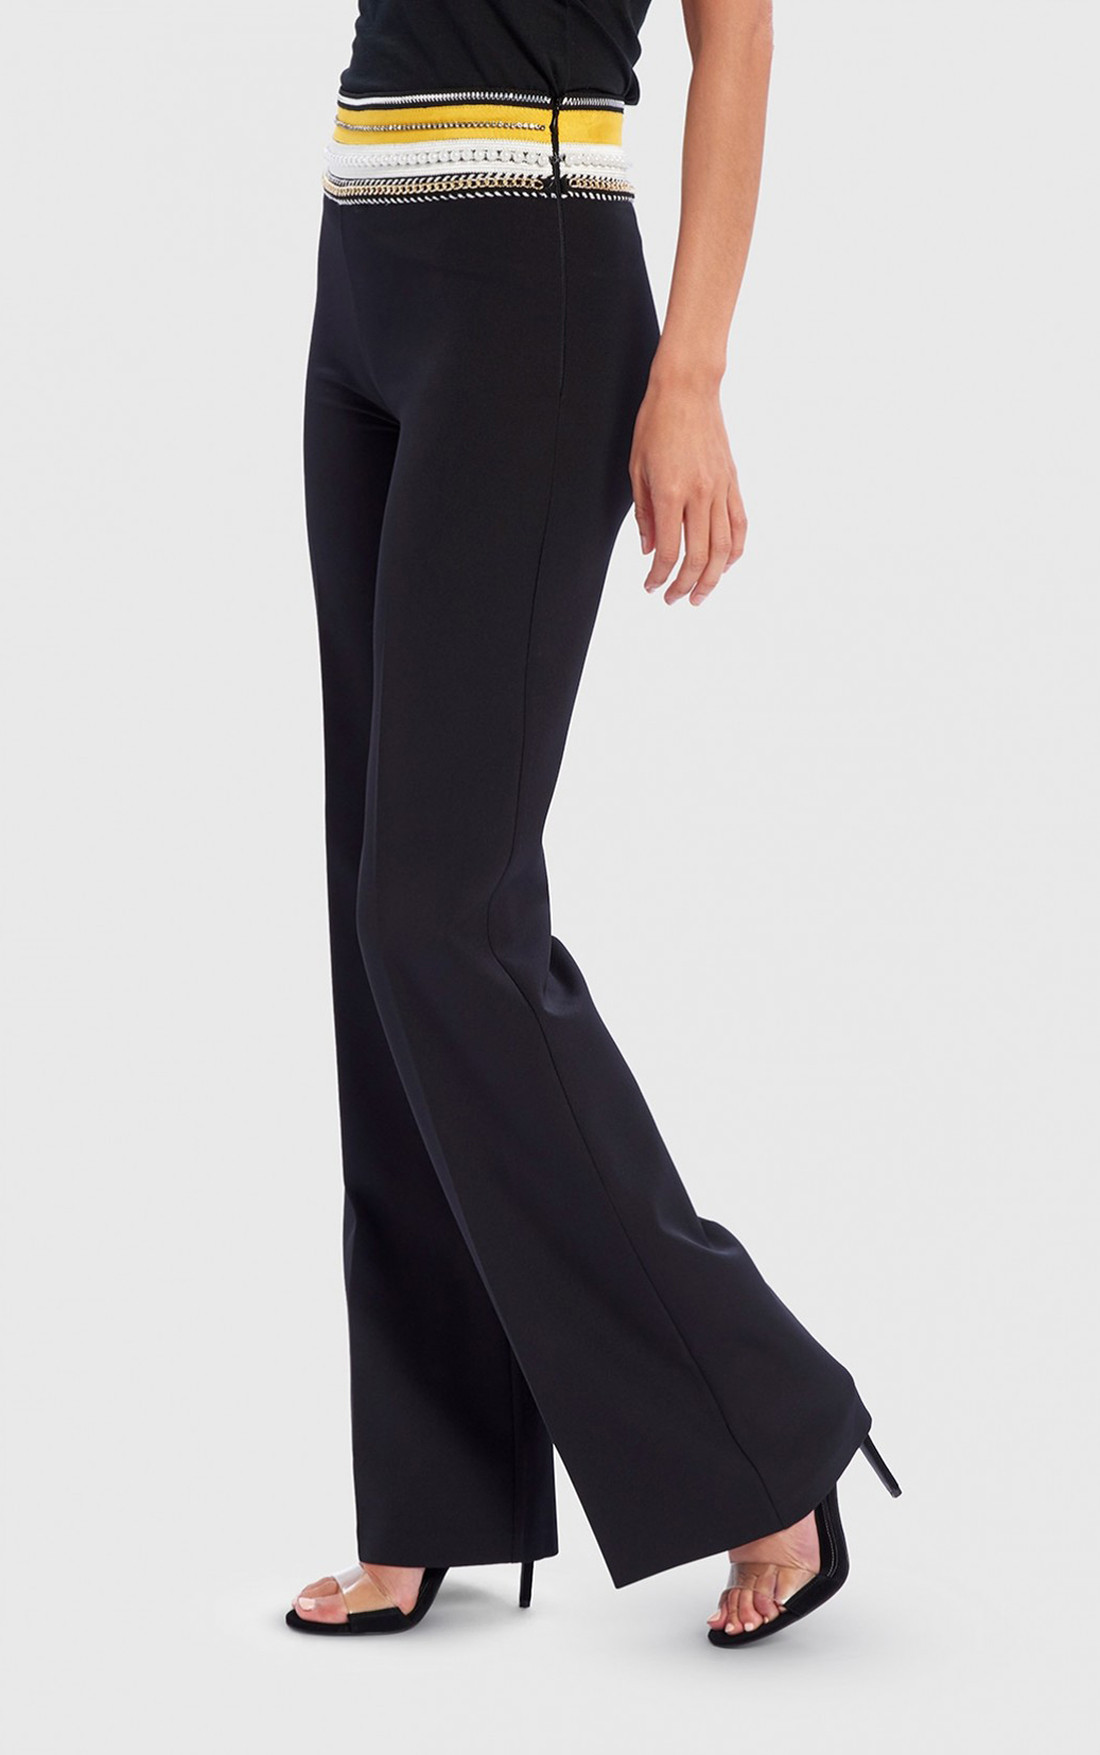 Forever Unique - Wilder Black Tailored Suit Trousers With Yellow Embellished Waistband (AF9711)